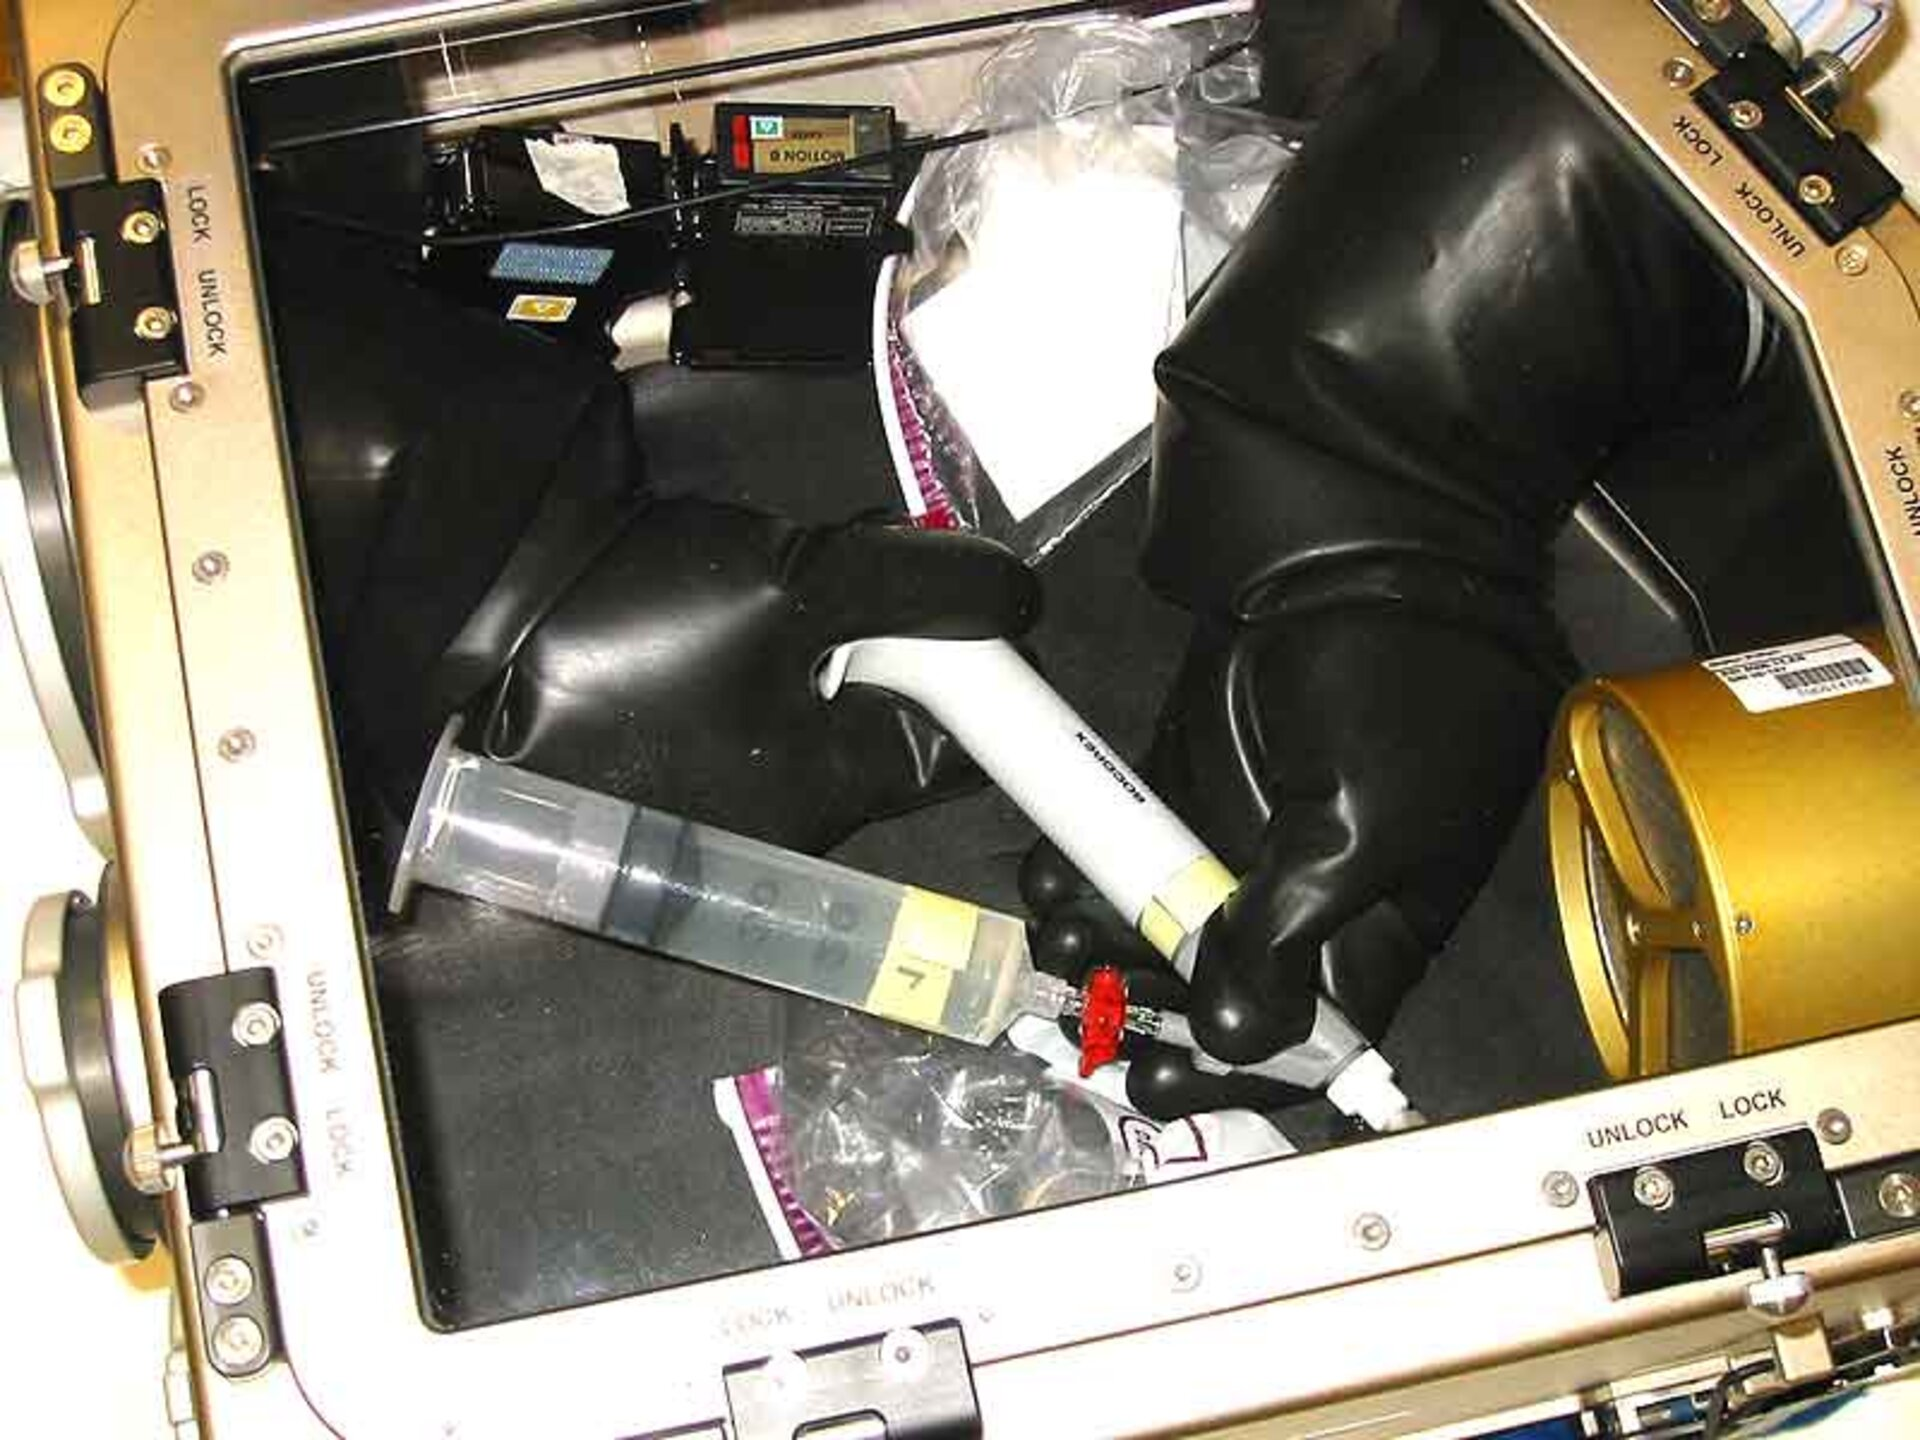 Cell experiment in portable glovebox